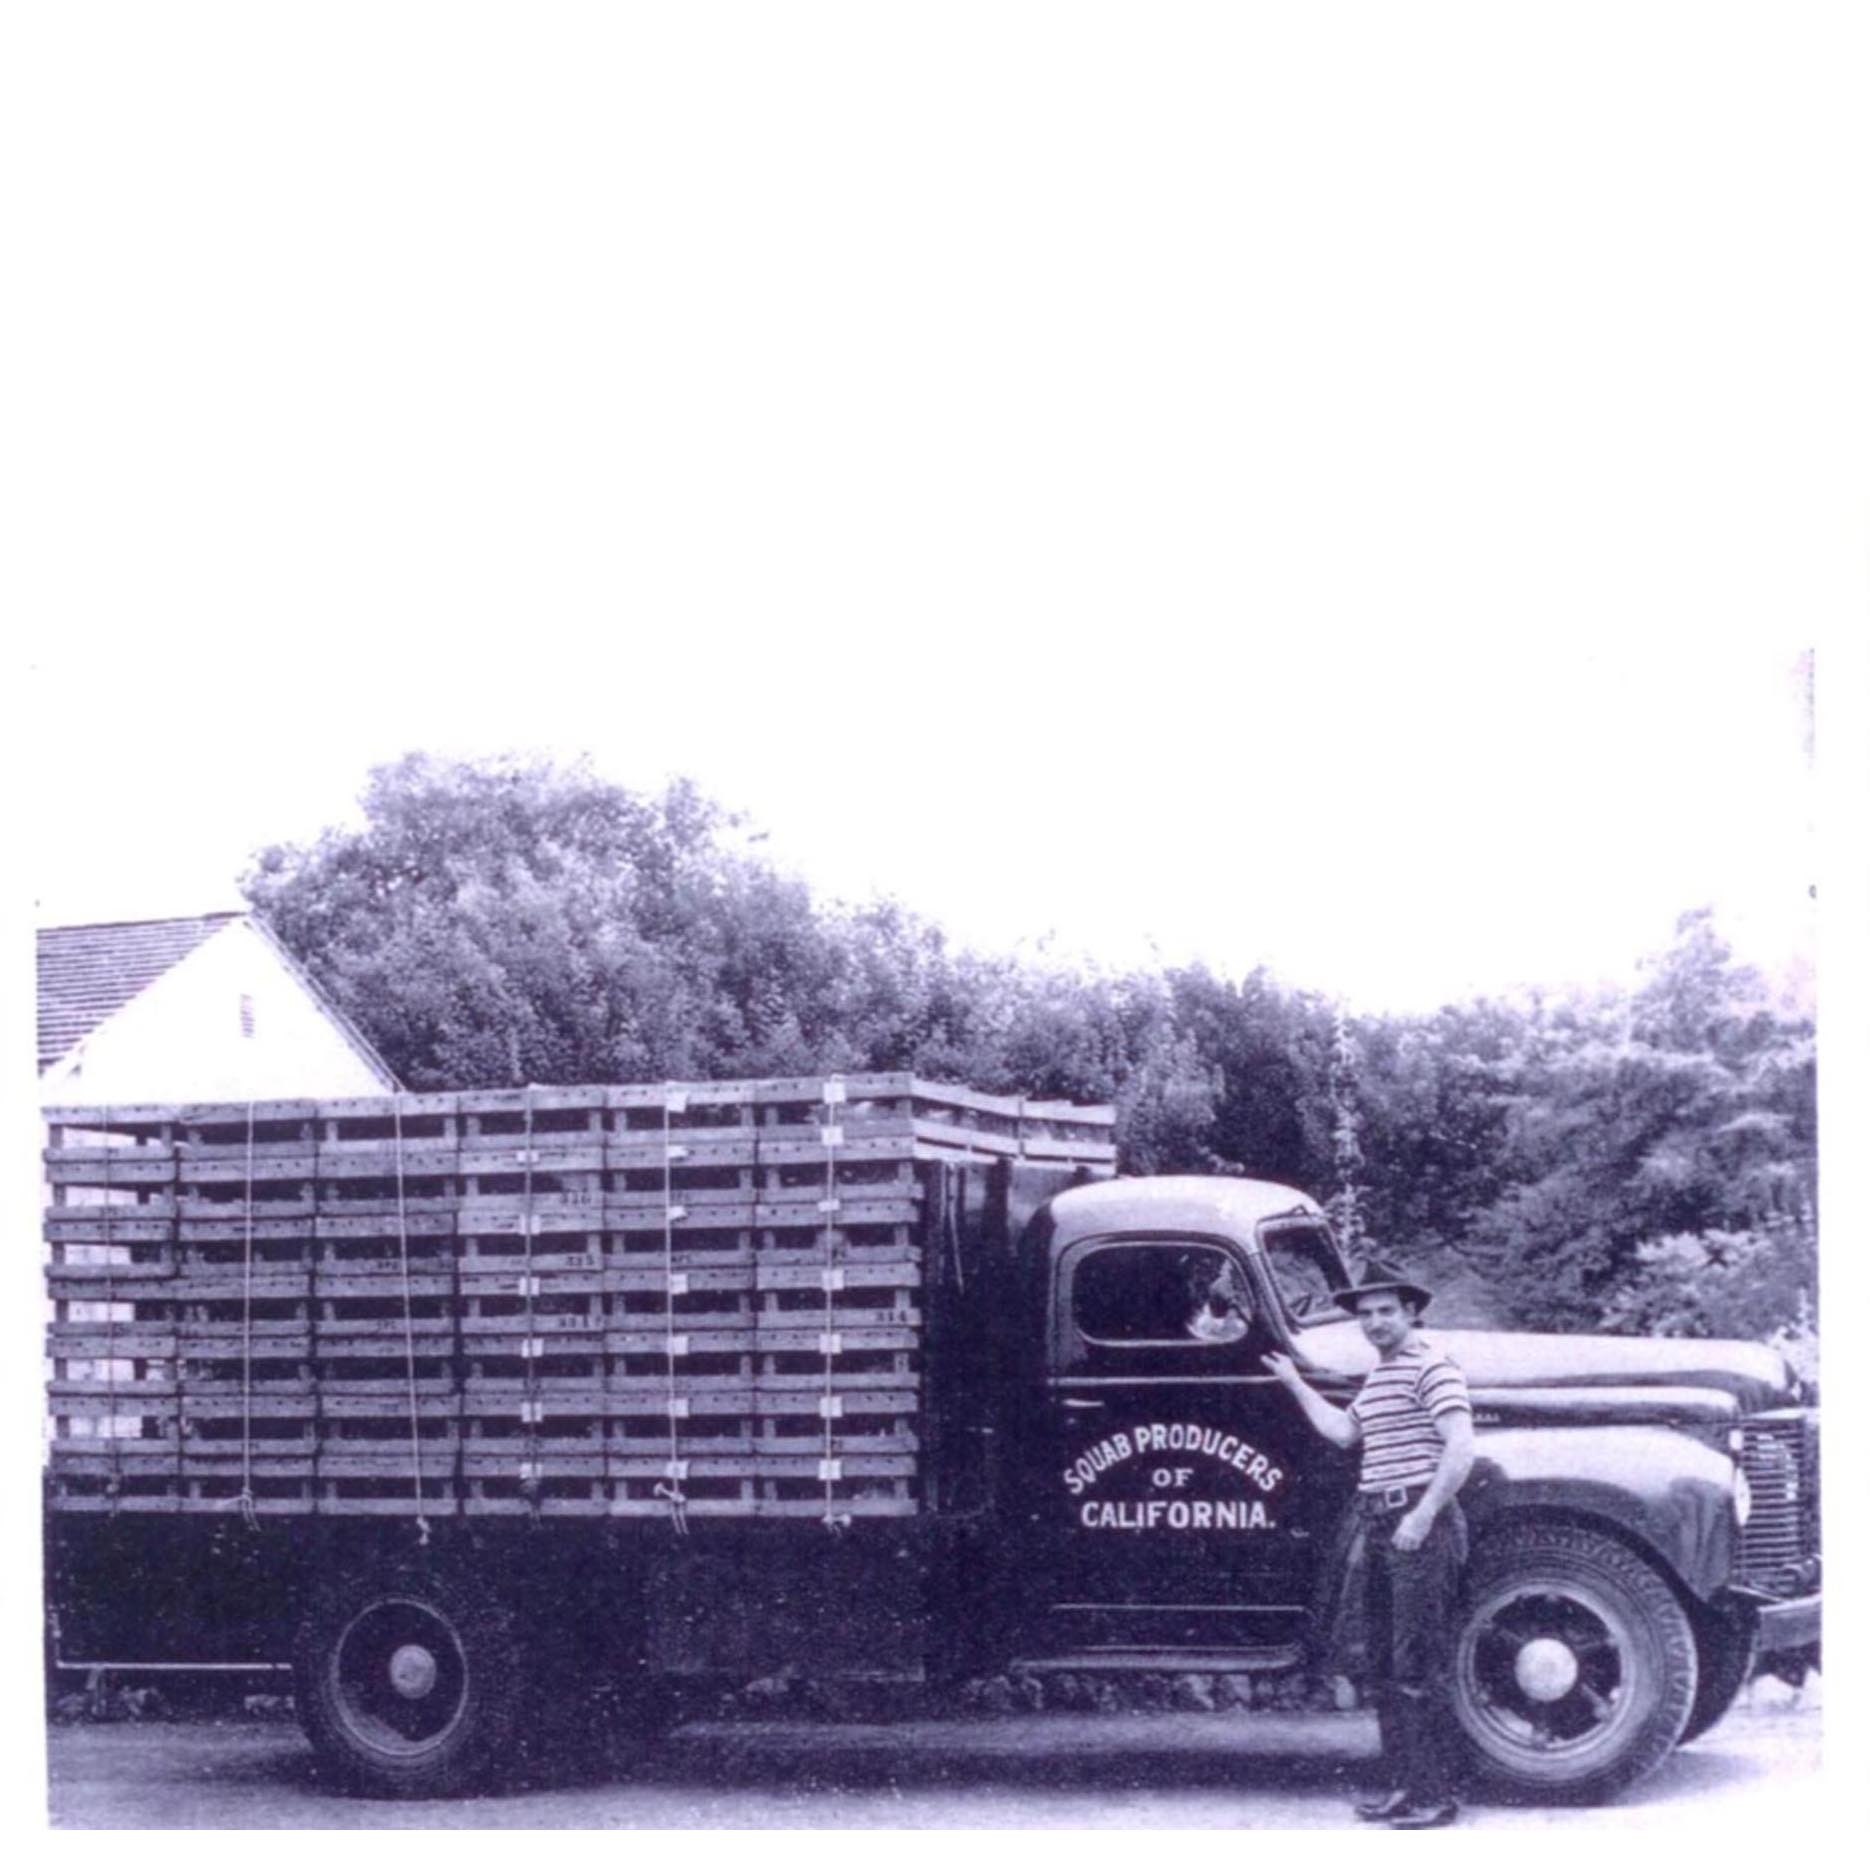 August 1945. Co-op member Tony Cecillo pictured with the SPOC delivery truck.